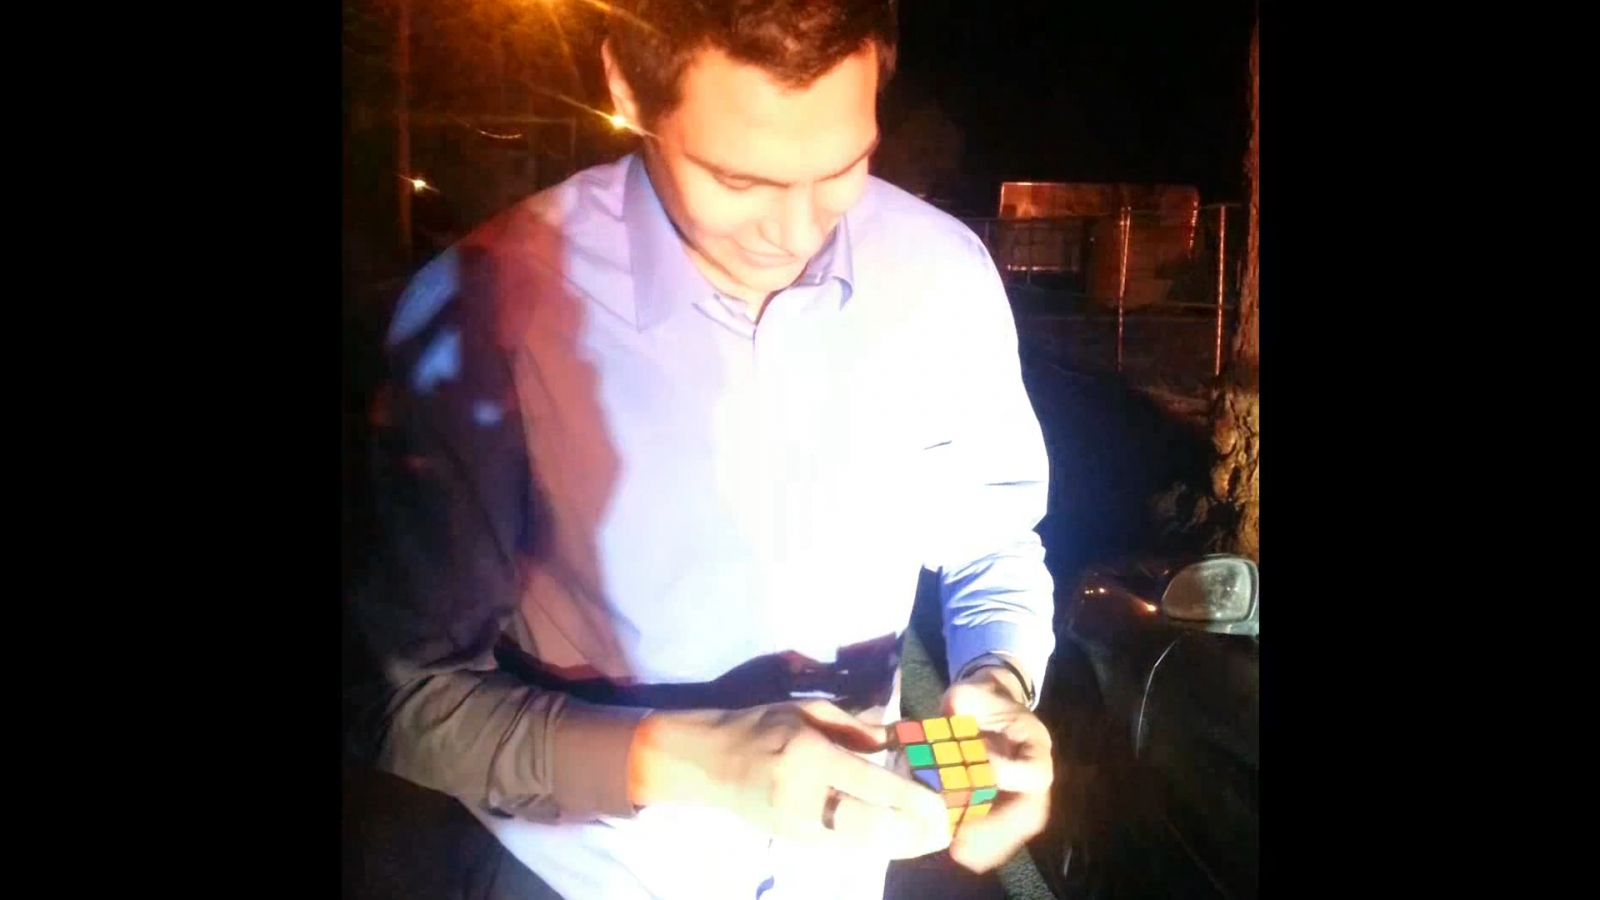 Magician solves Rubik's Cube in one second to avoid speeding ticket